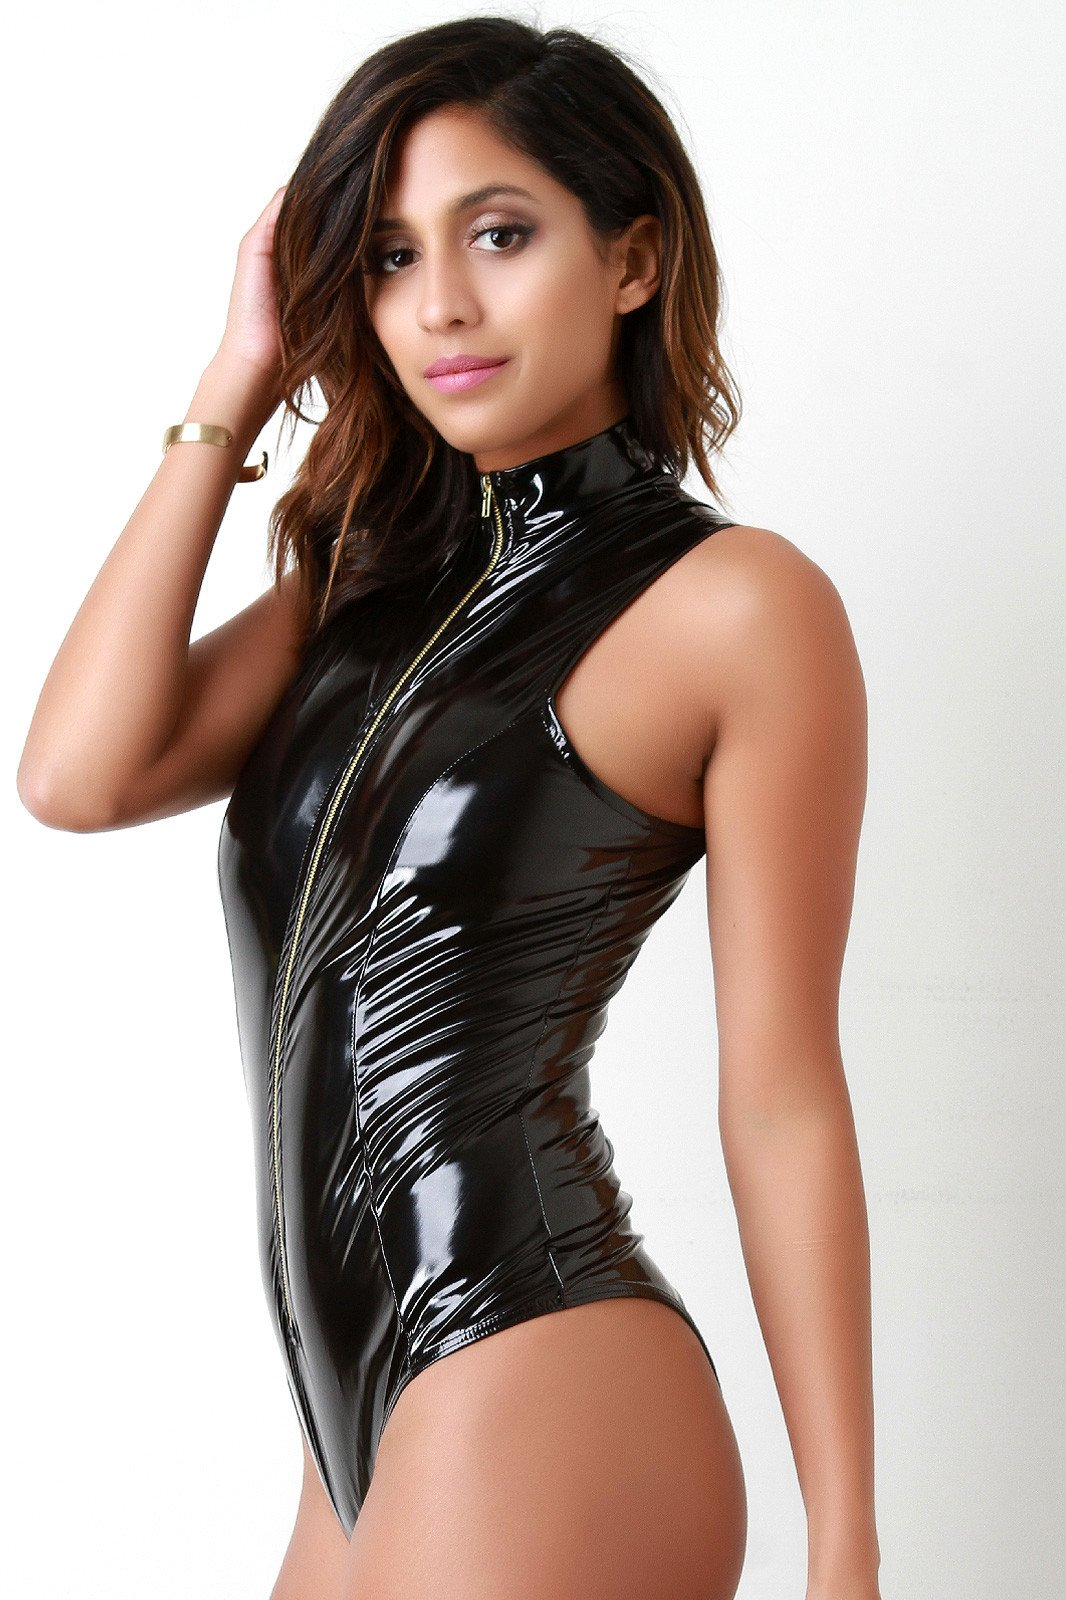 Finished james bond monokini in glossy stretch vinyl.